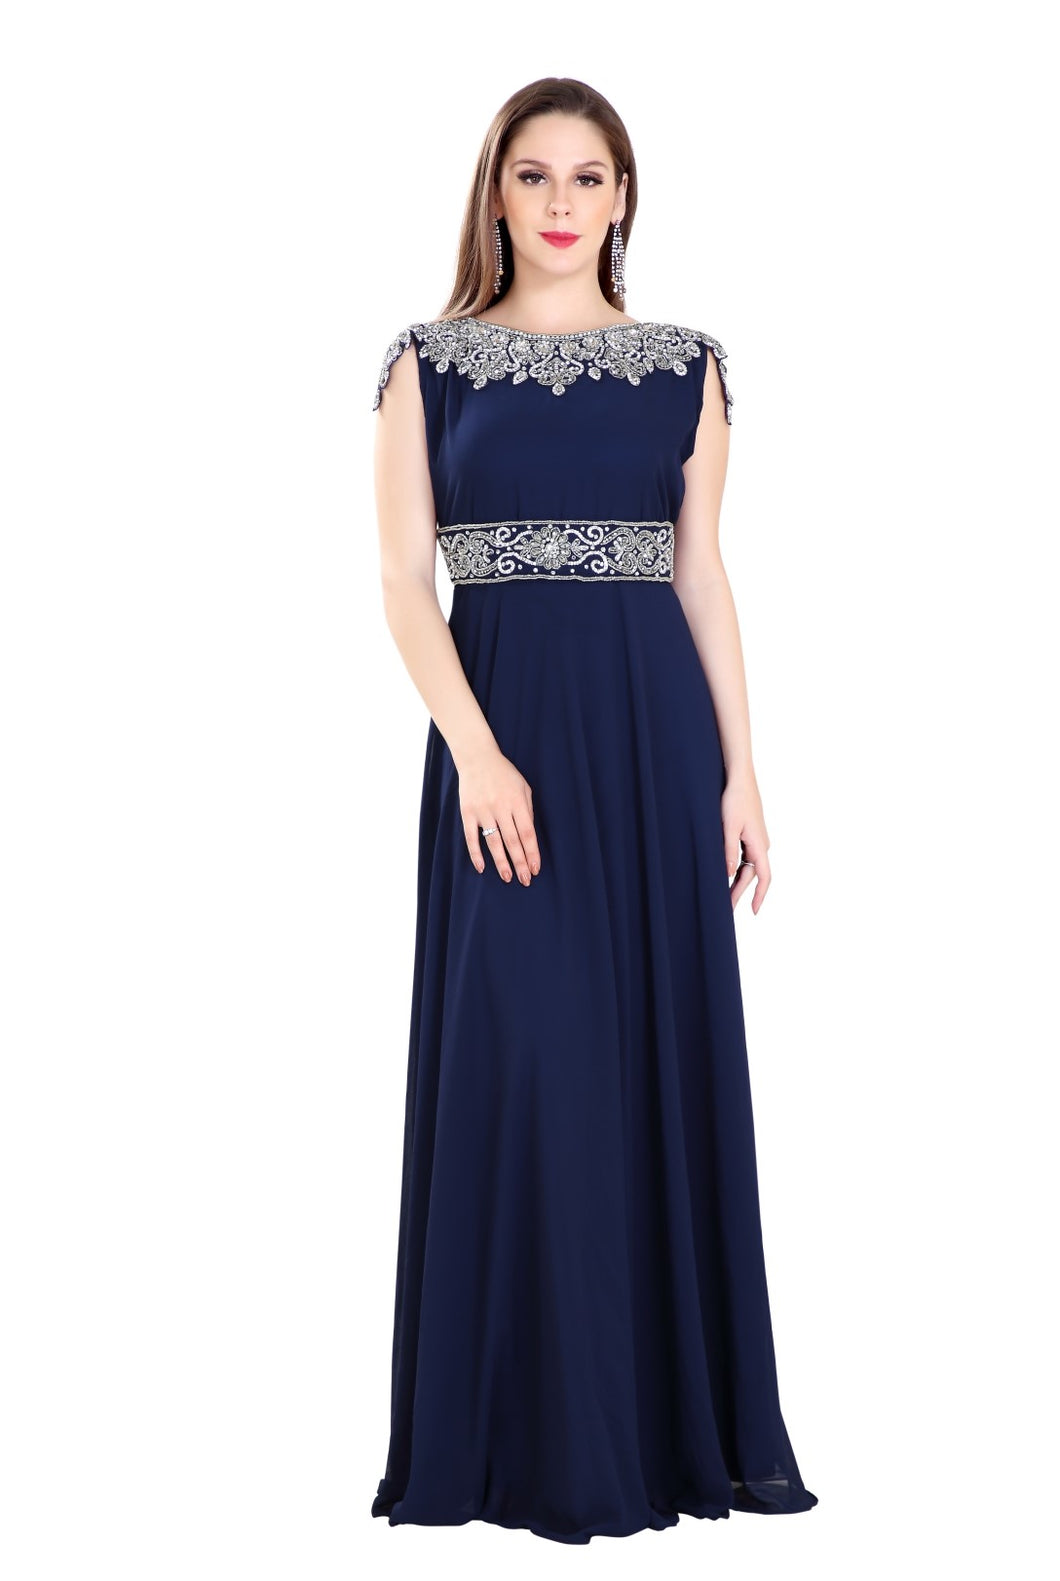 Rhinestone Customized Dubai Fustan Tea Party Evening Dress